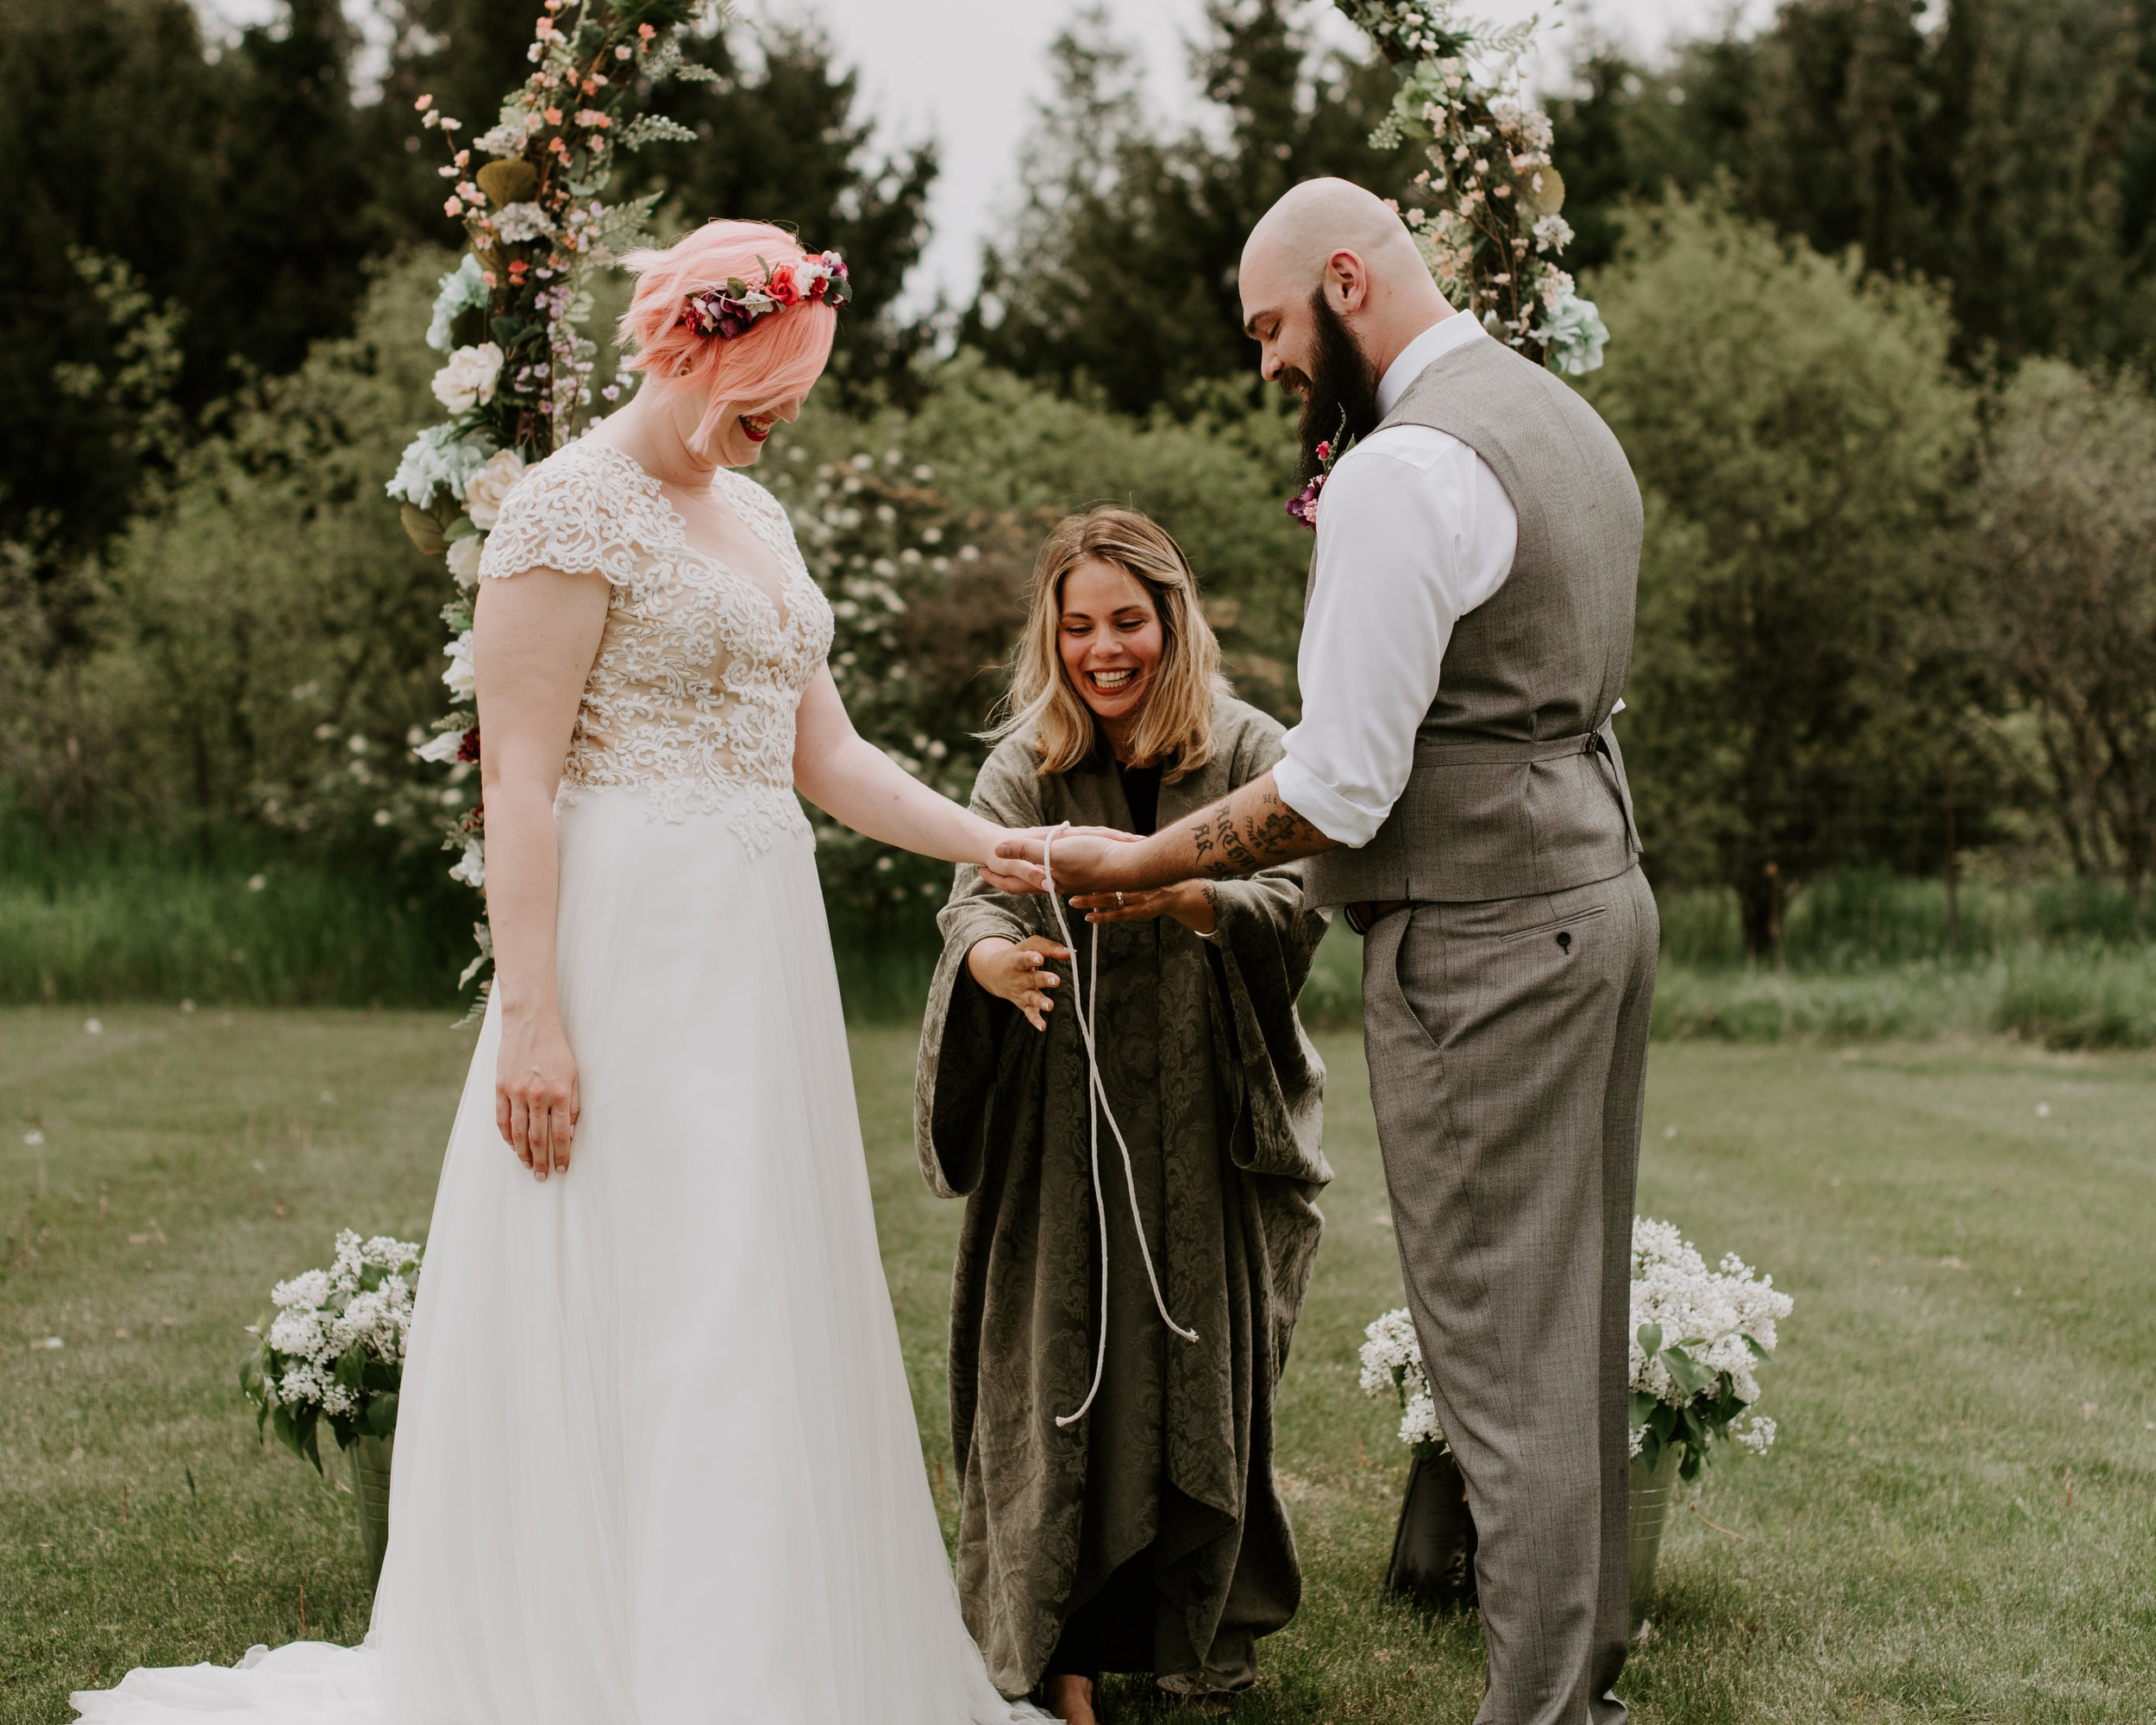 Handfasting Wedding Ceremony - Part Two